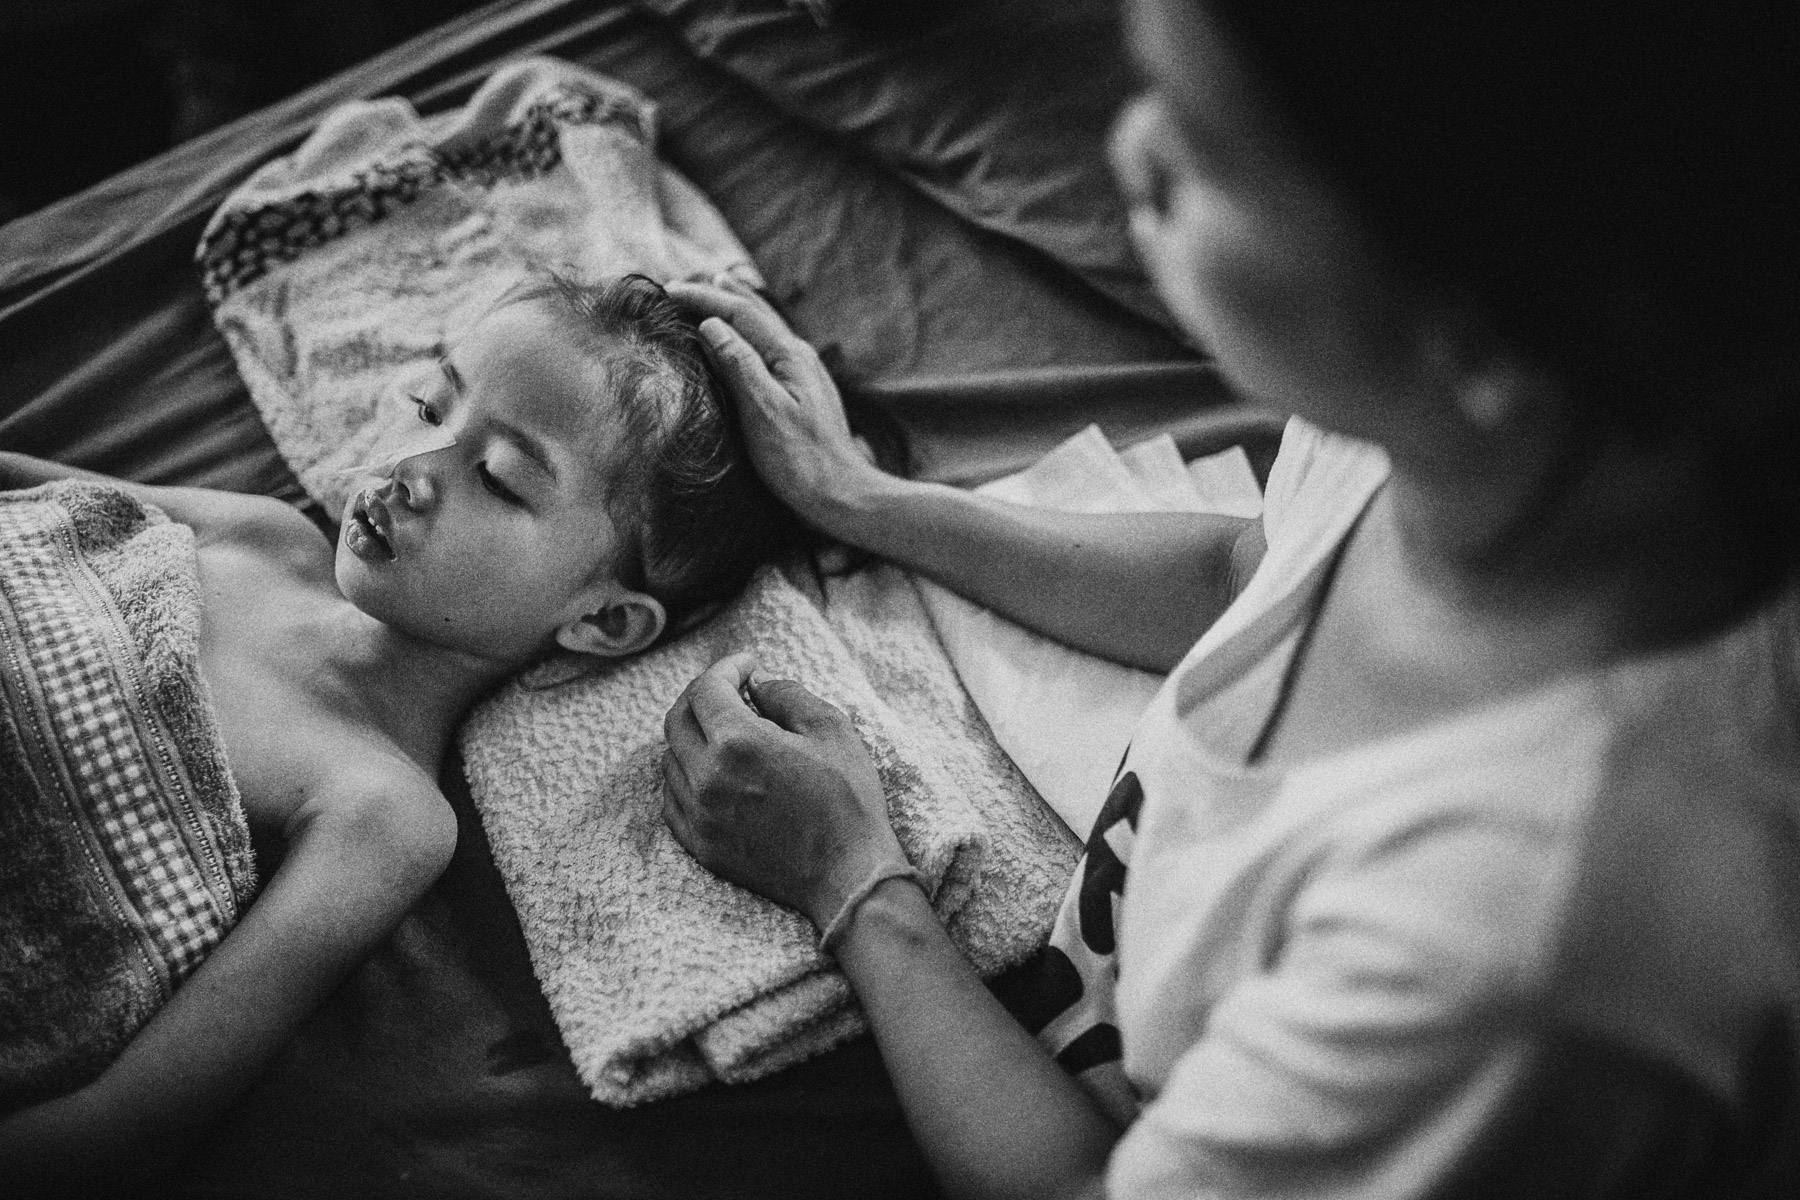 Six-year-old Namfon lies in a Japanese Encephalitis-induced coma at a hospital in Vientiane, Laos, as her mother Teo leans over to comfort her.